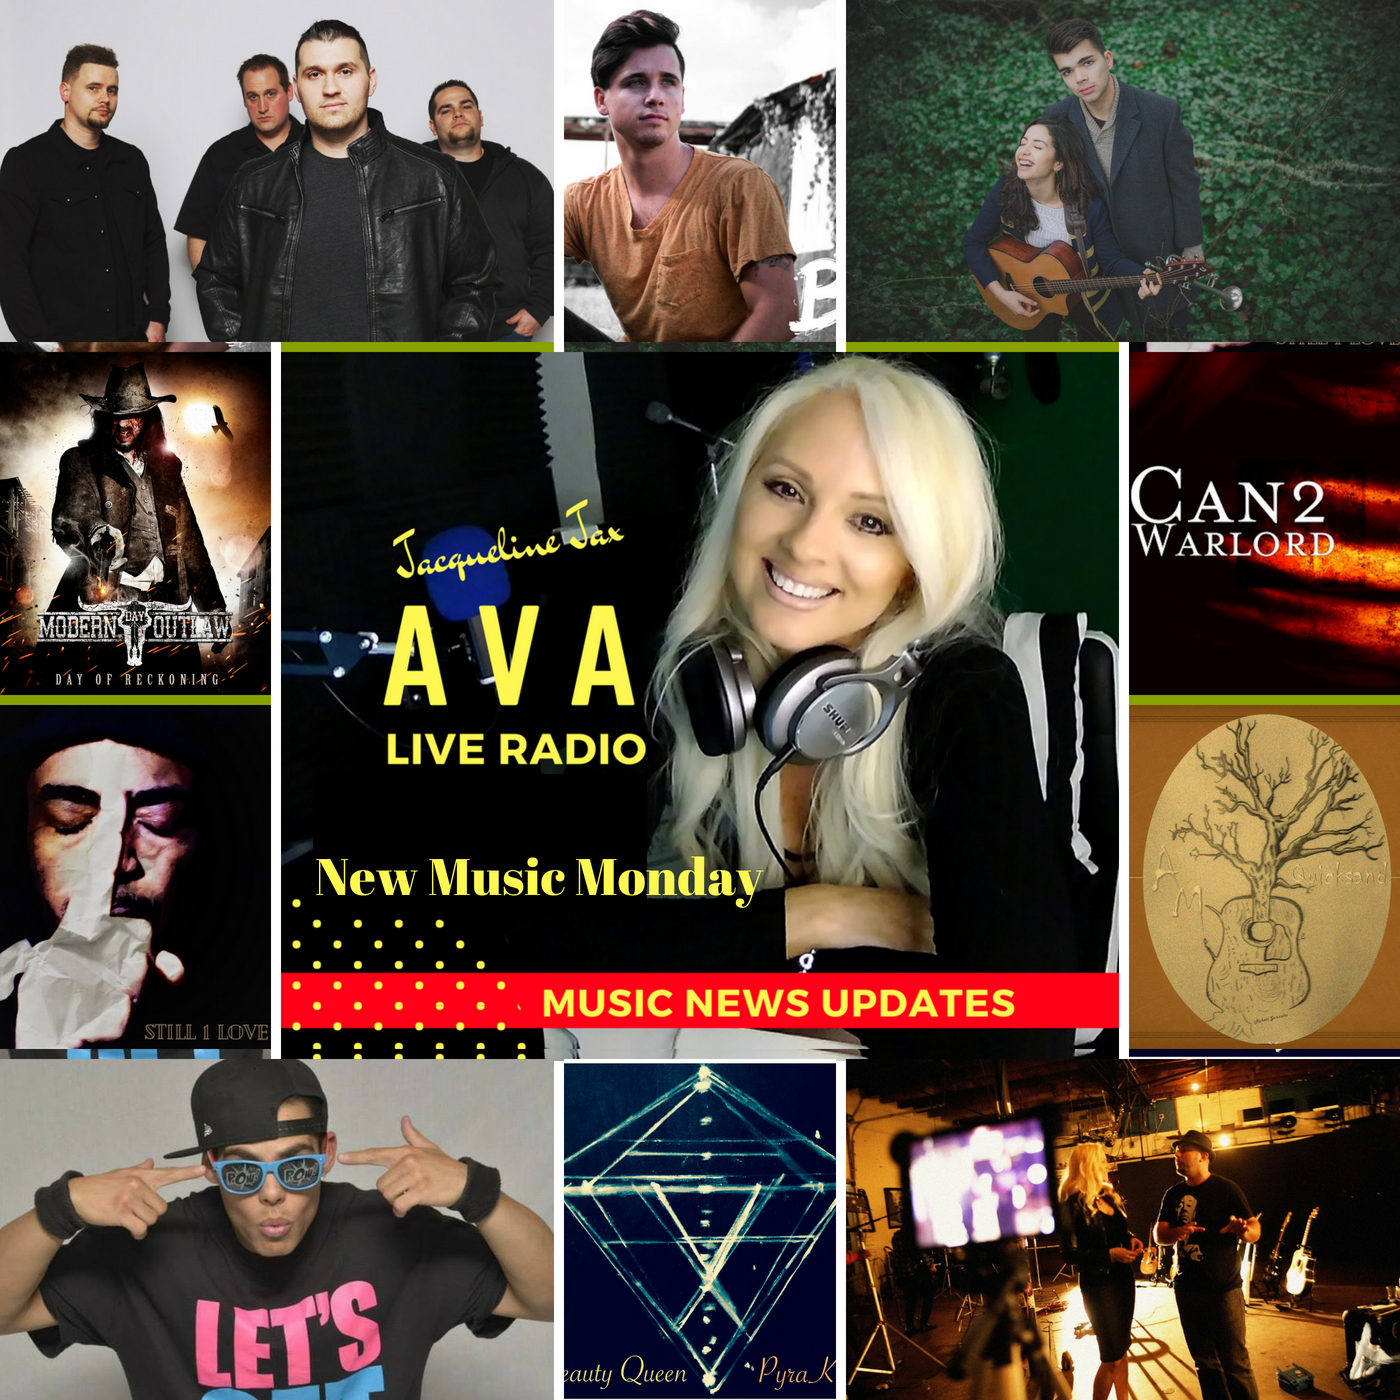 New Music Monday & Music Business News - AVA Live Radio - Medium